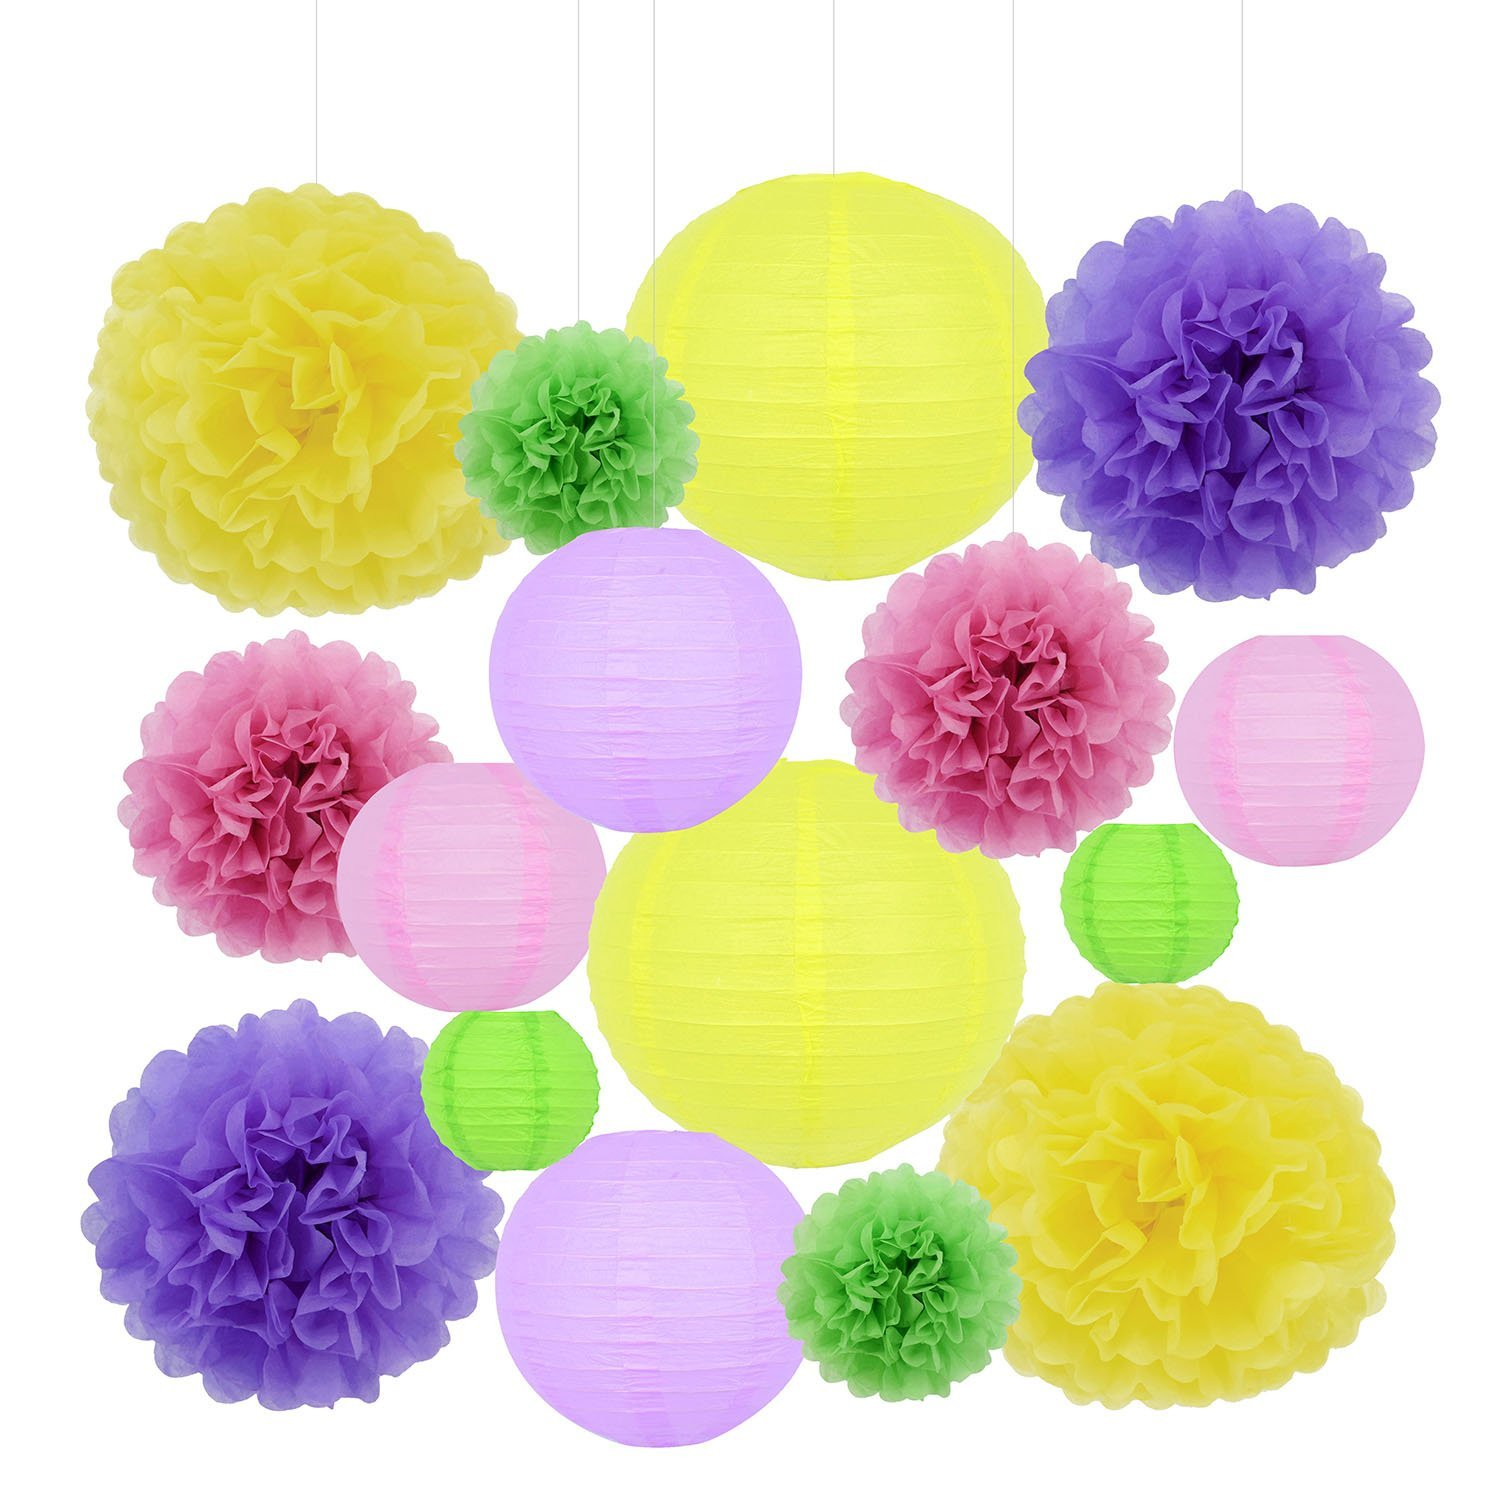 Racol 16pcs Colorful Paper Lanterns with Paper Flower Pom for Paper Hanging Decorations Ball Lanterns for Home Decor, Parties, and Weddings Decoration